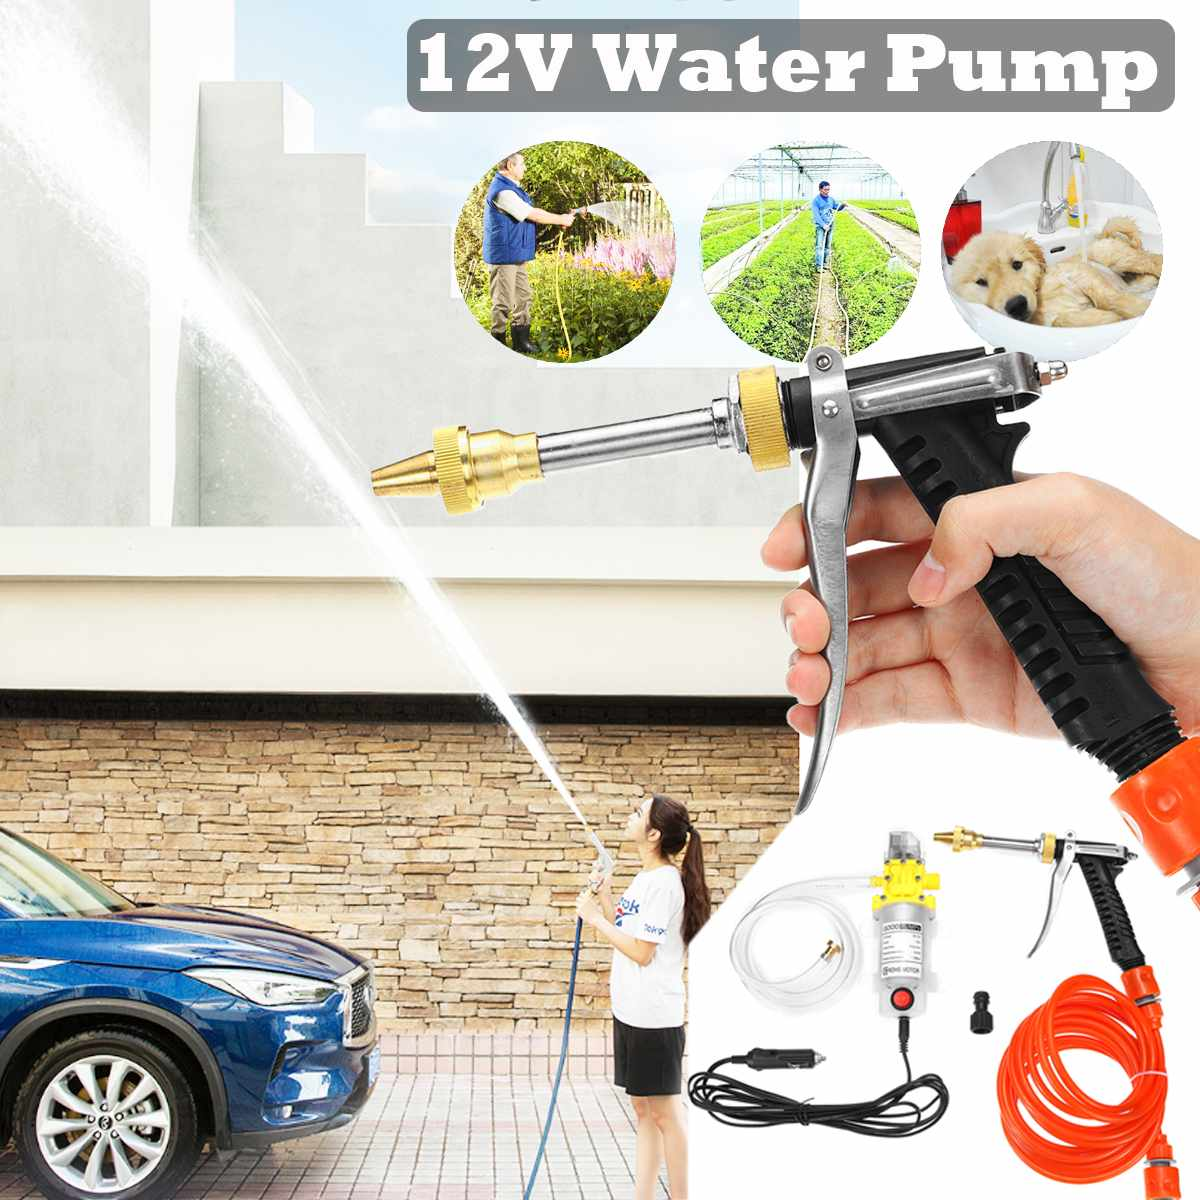 12V 120W High Pressure Car Electric Washer Wash Pump Set Portable Auto Washing Machine Kit With Car Cigarette Lighter